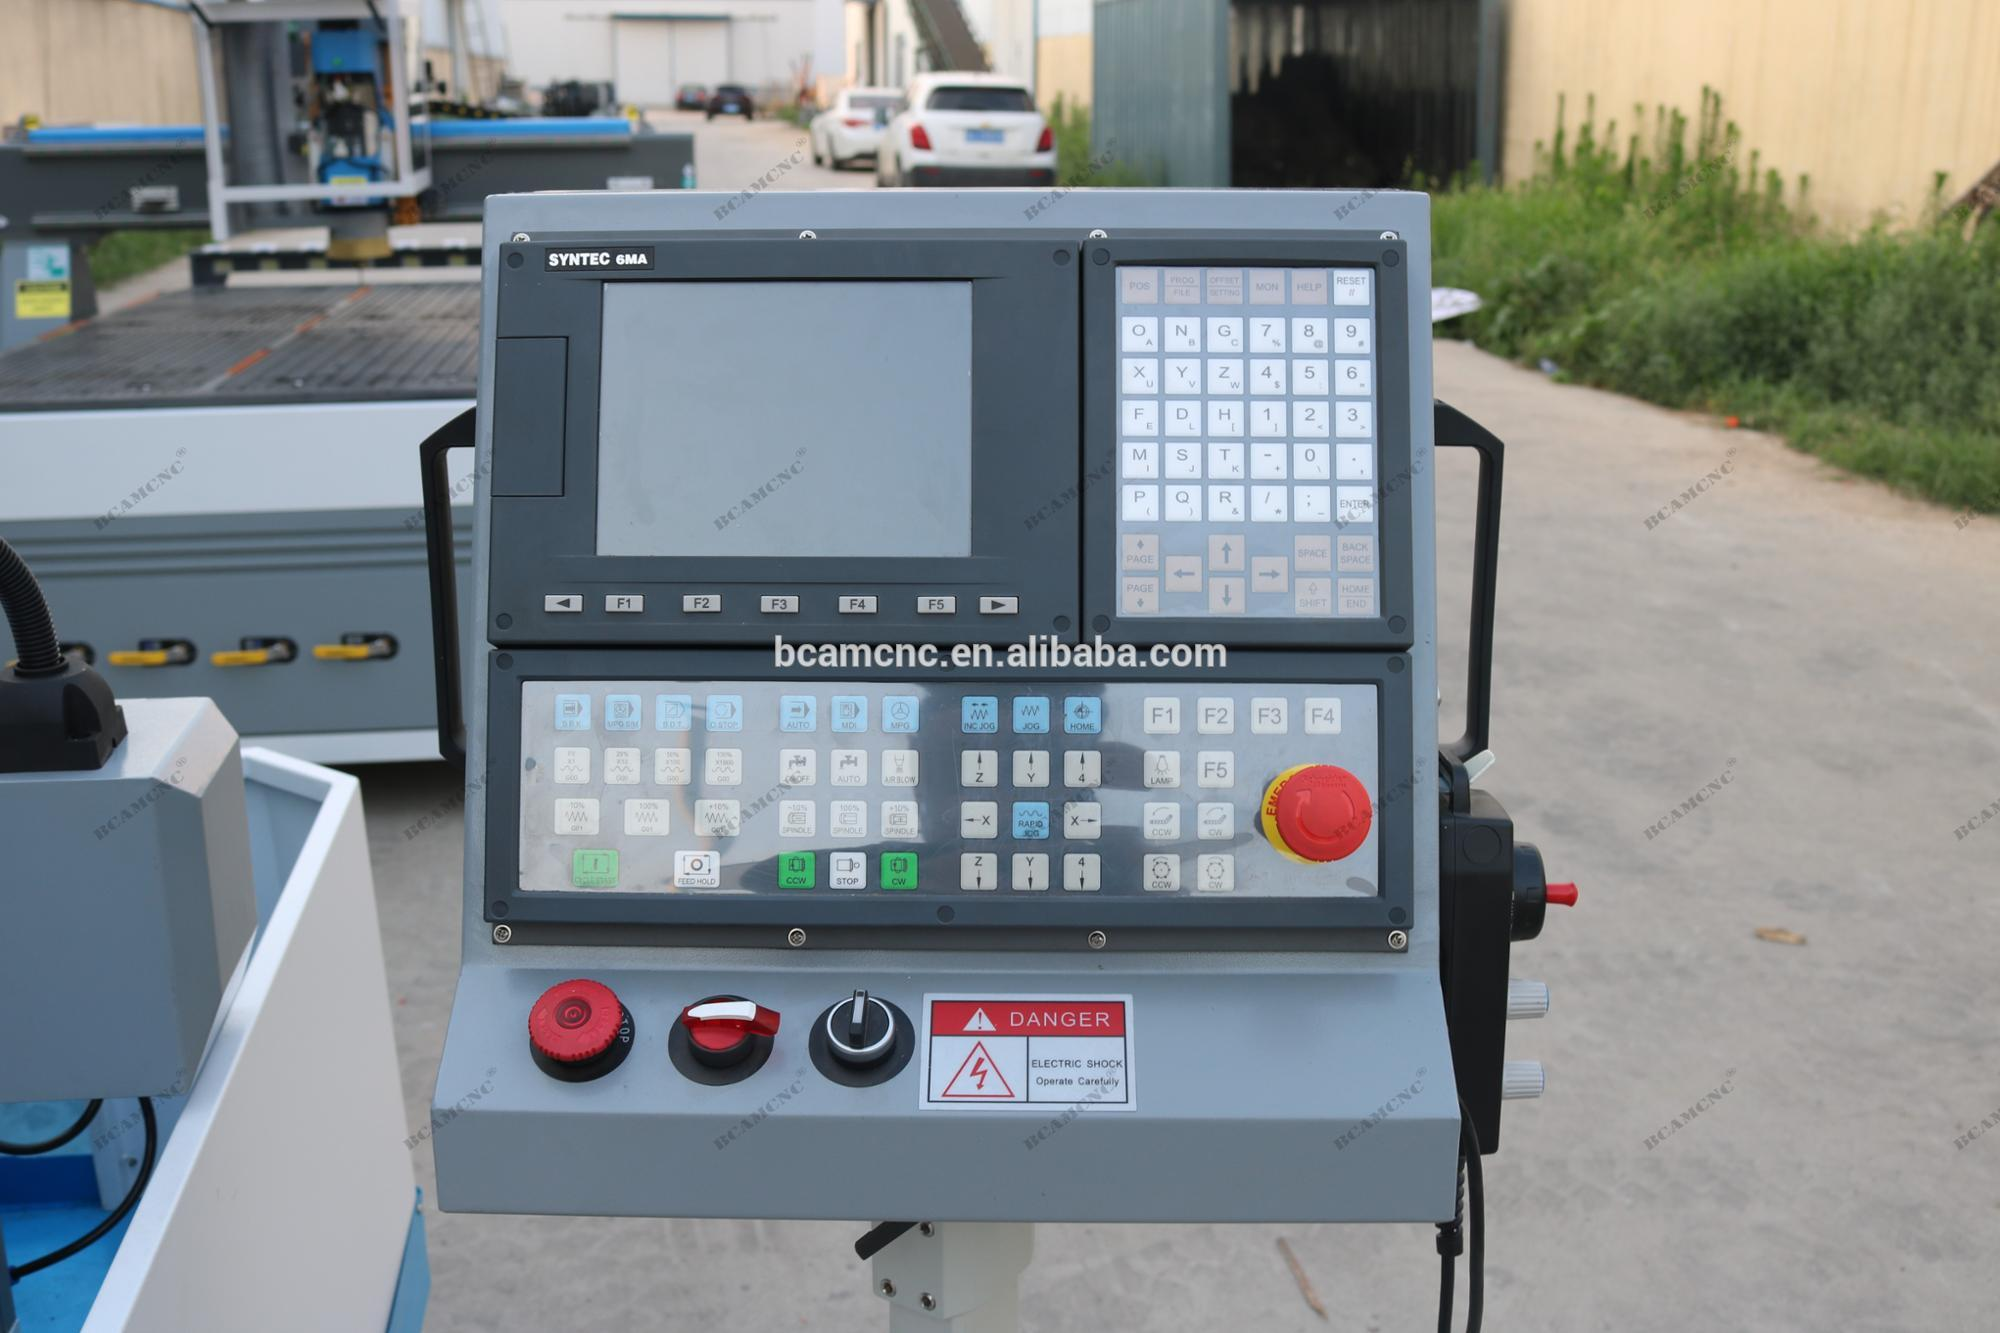 Advanced Technology Eastern BCAMCNC Brass Cutting Engraving Machine BCM6060 - Dragon Machinery 10